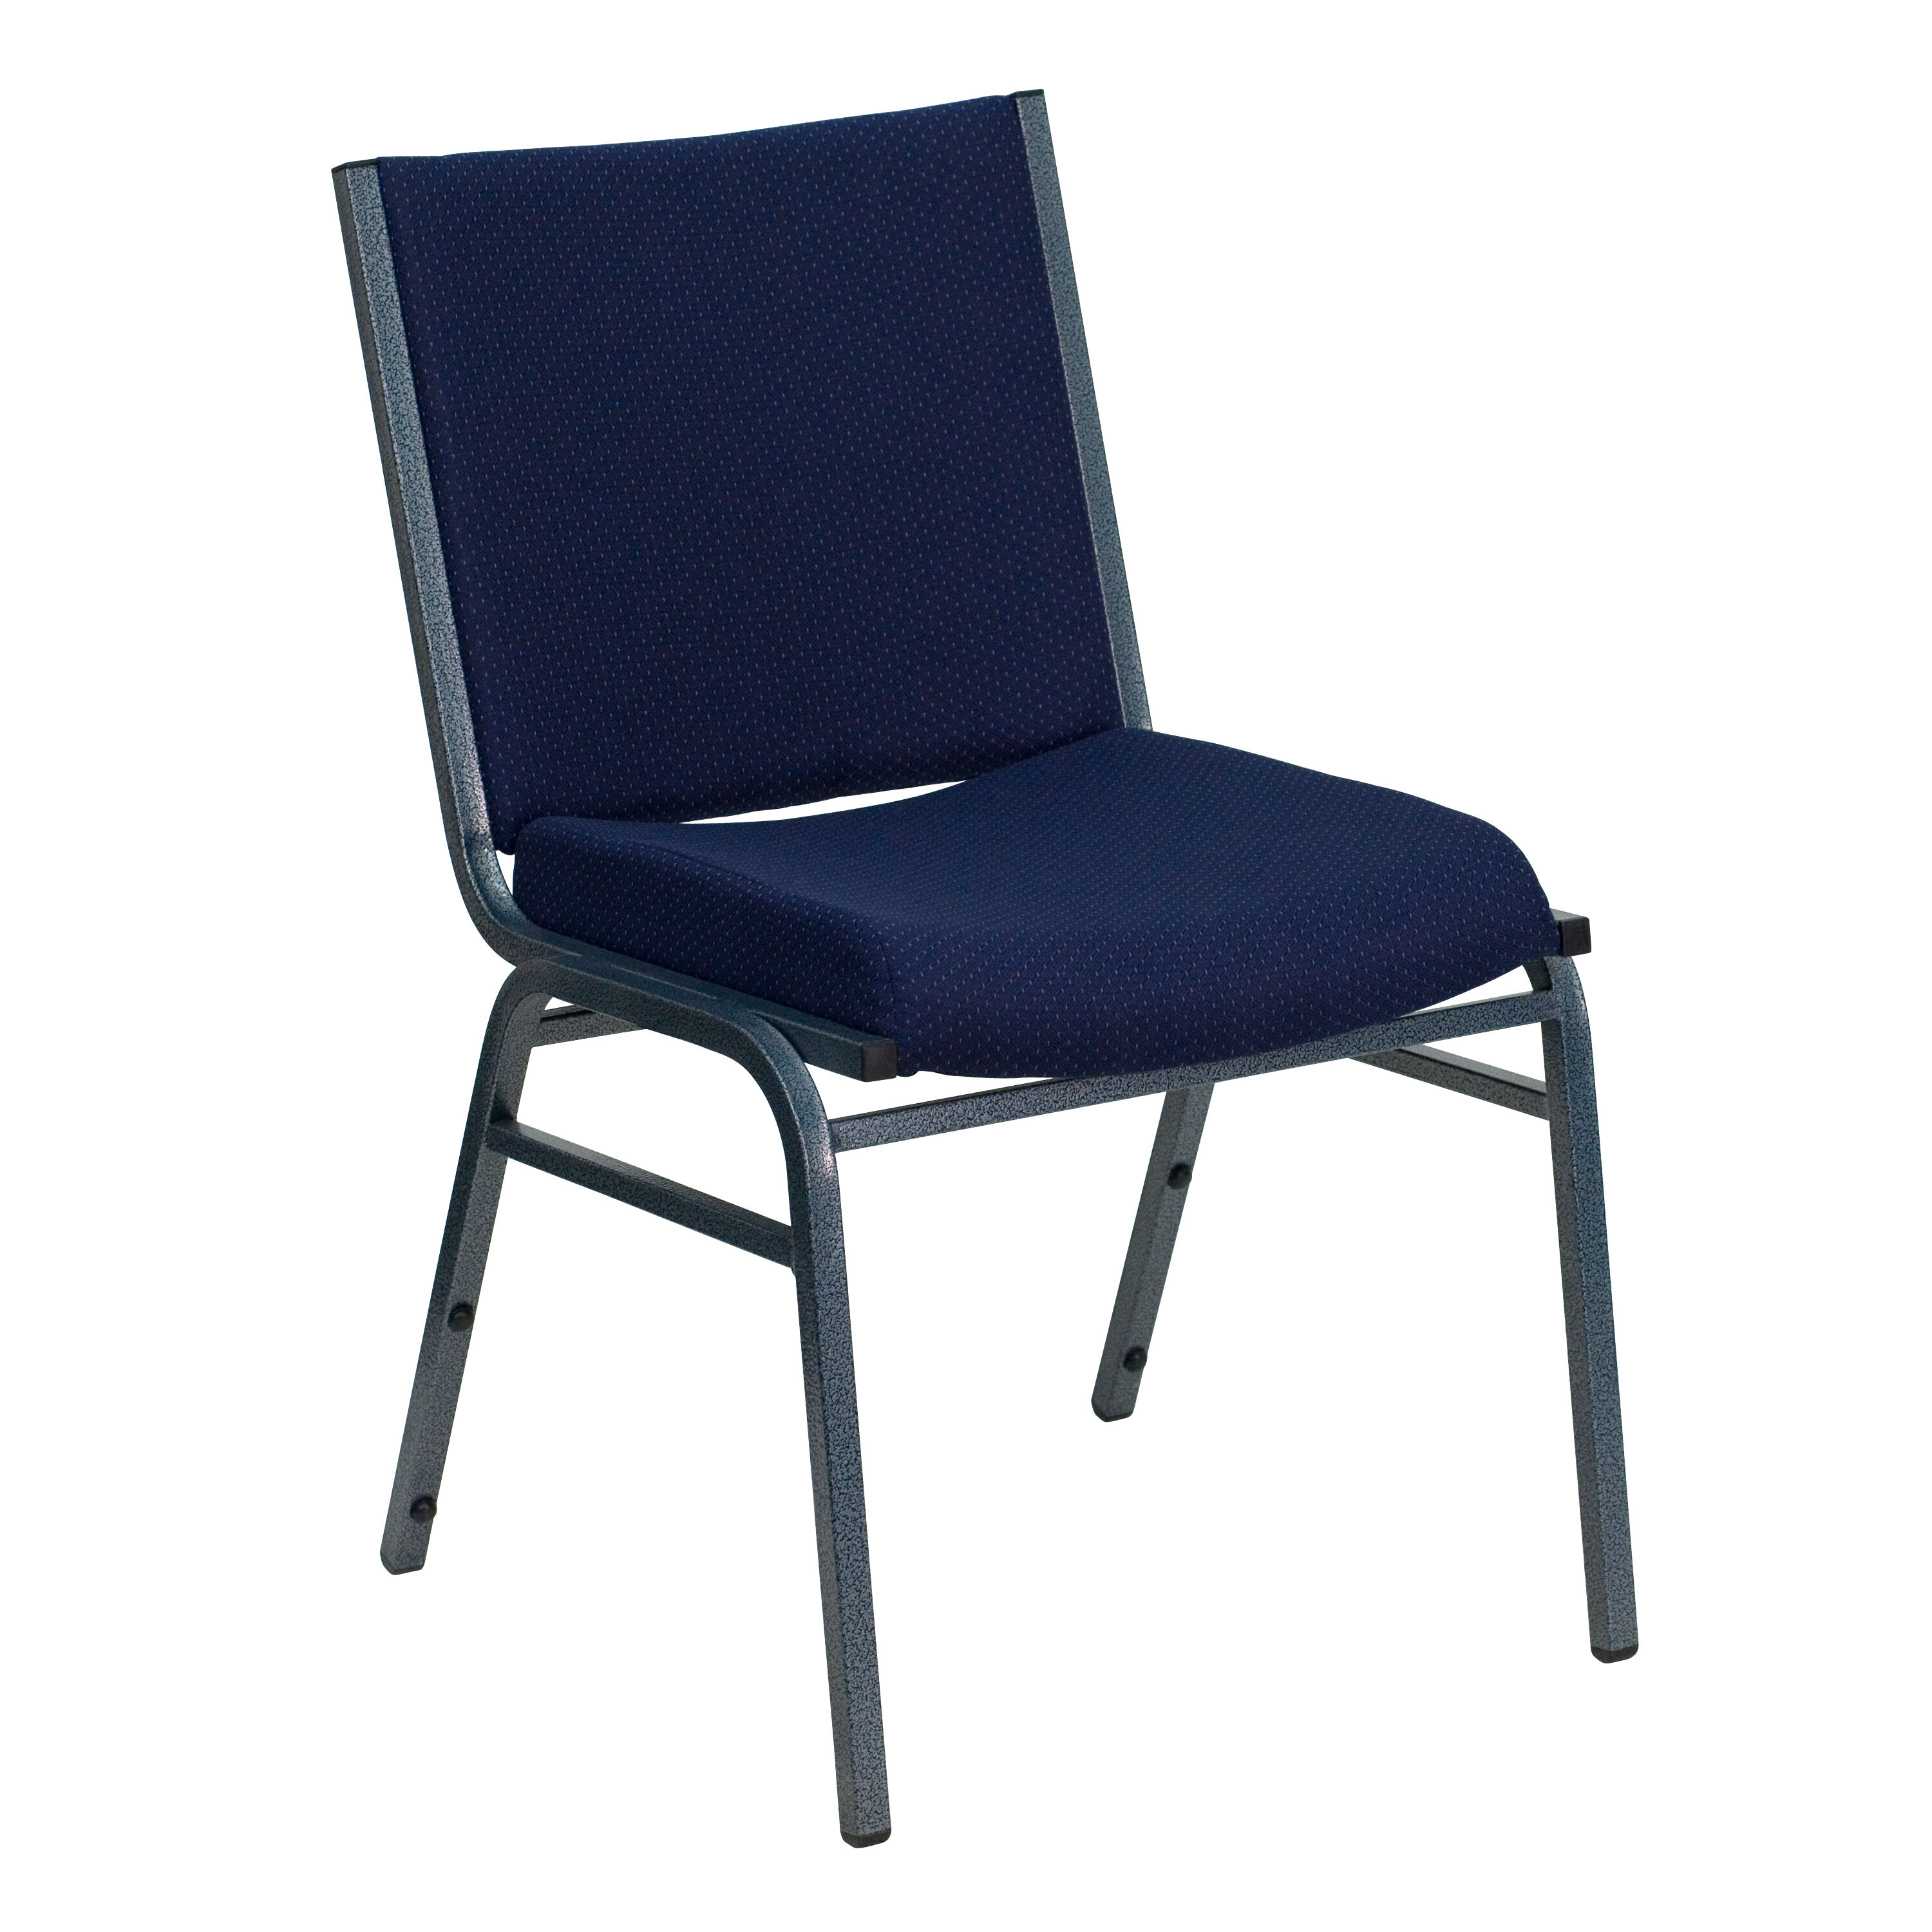 blue dot chairs adirondack colors navy fabric stack chair xu 60153 nvy gg stackchairs4less